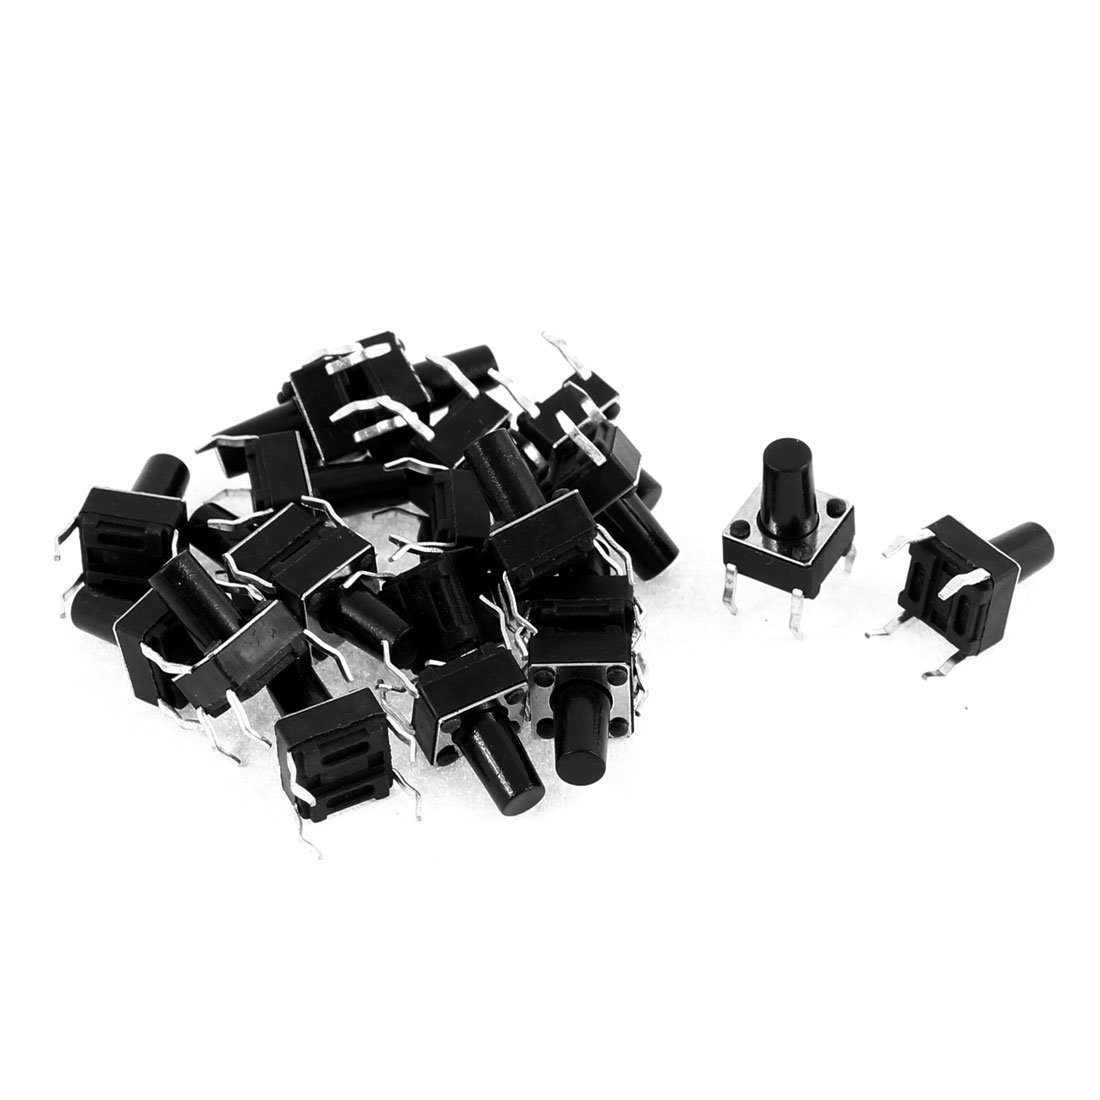 Tact 4 DIP Switch Plastic Momentary Tactile Push Button Black 6 x 6 x 9mm 20 Pcs